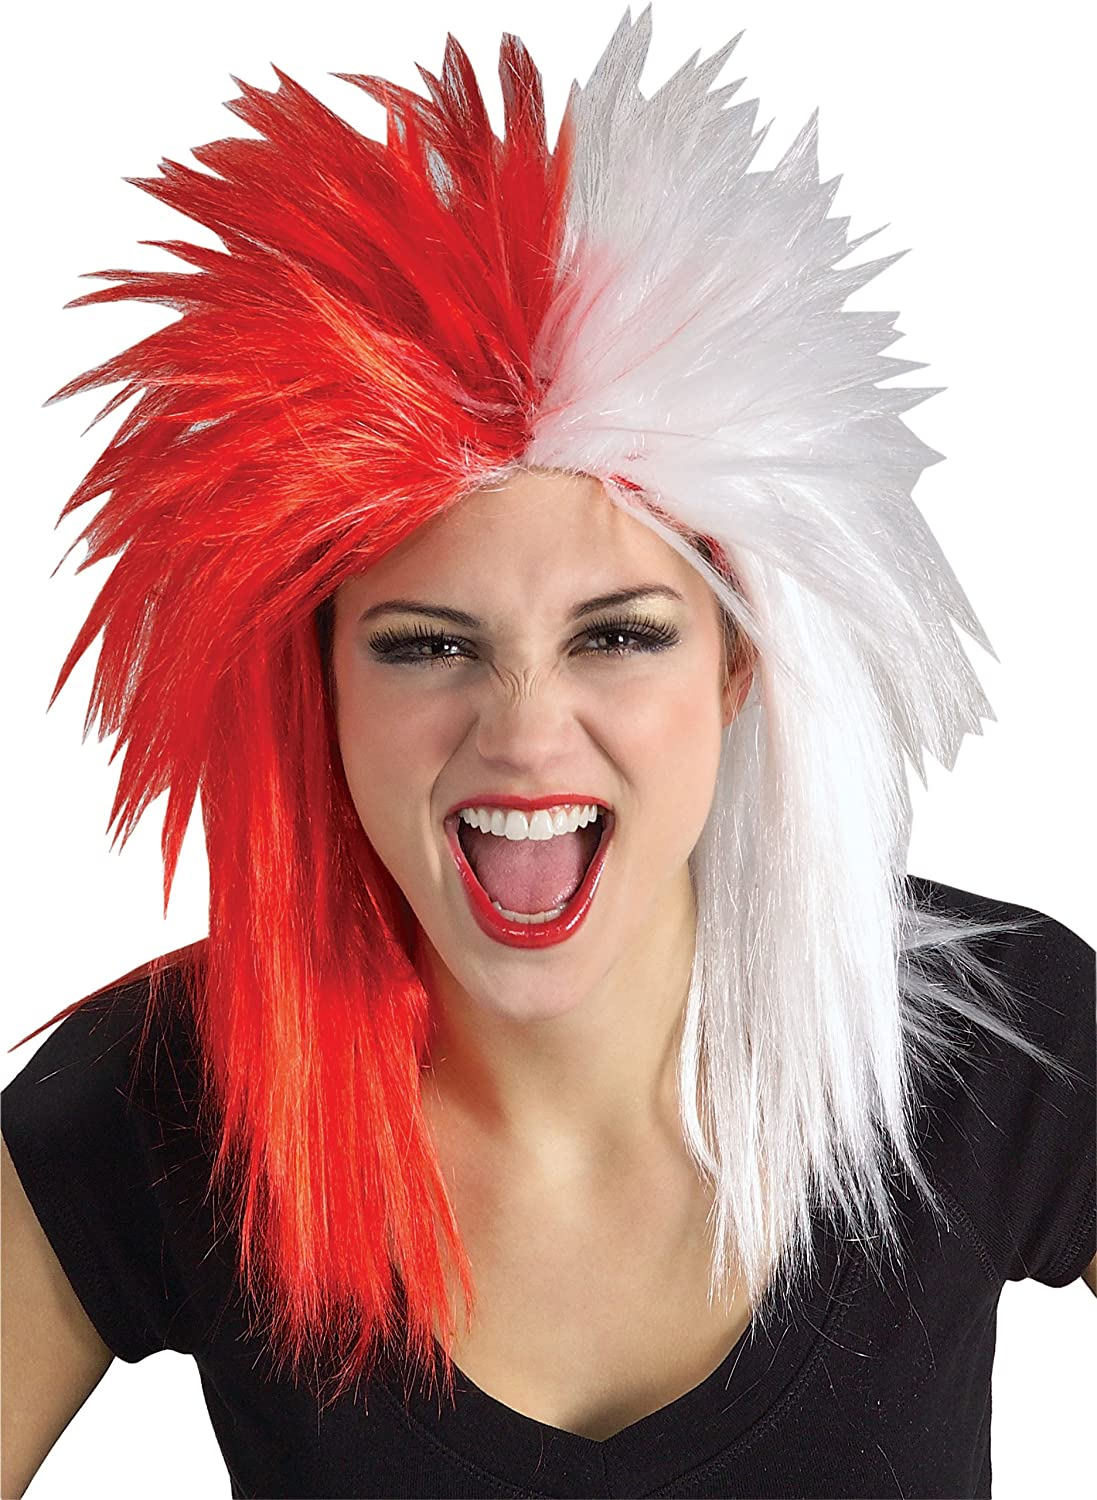 Amazon.com Rubieu0027s Red and White Sports Fan Wig Red/White One Size Clothing  sc 1 st  Amazon.com & Amazon.com: Rubieu0027s Red and White Sports Fan Wig Red/White One ...